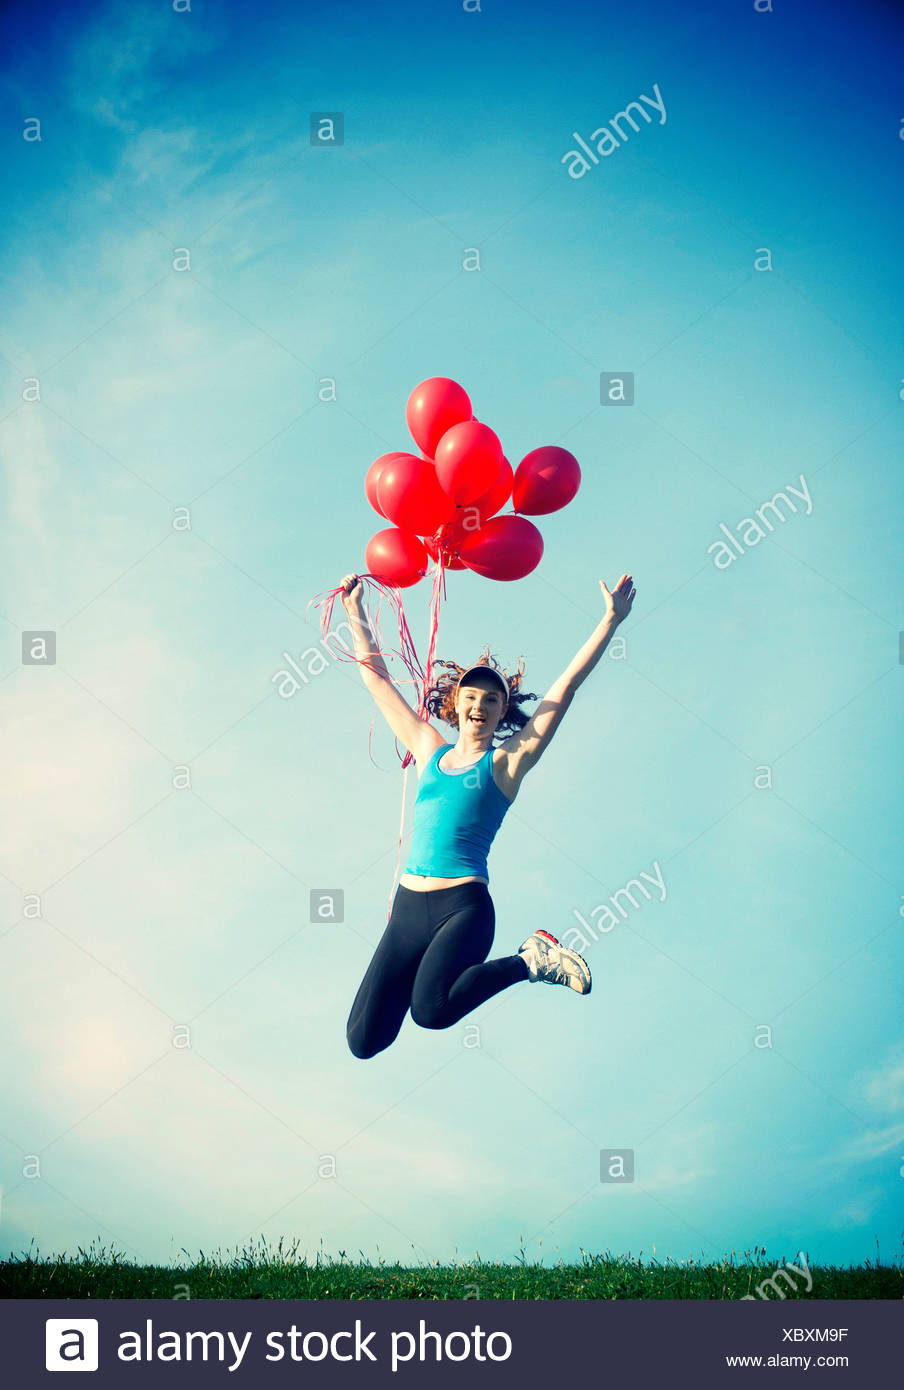 Teenage girl jumping in mid air holding red balloons - Stock Image